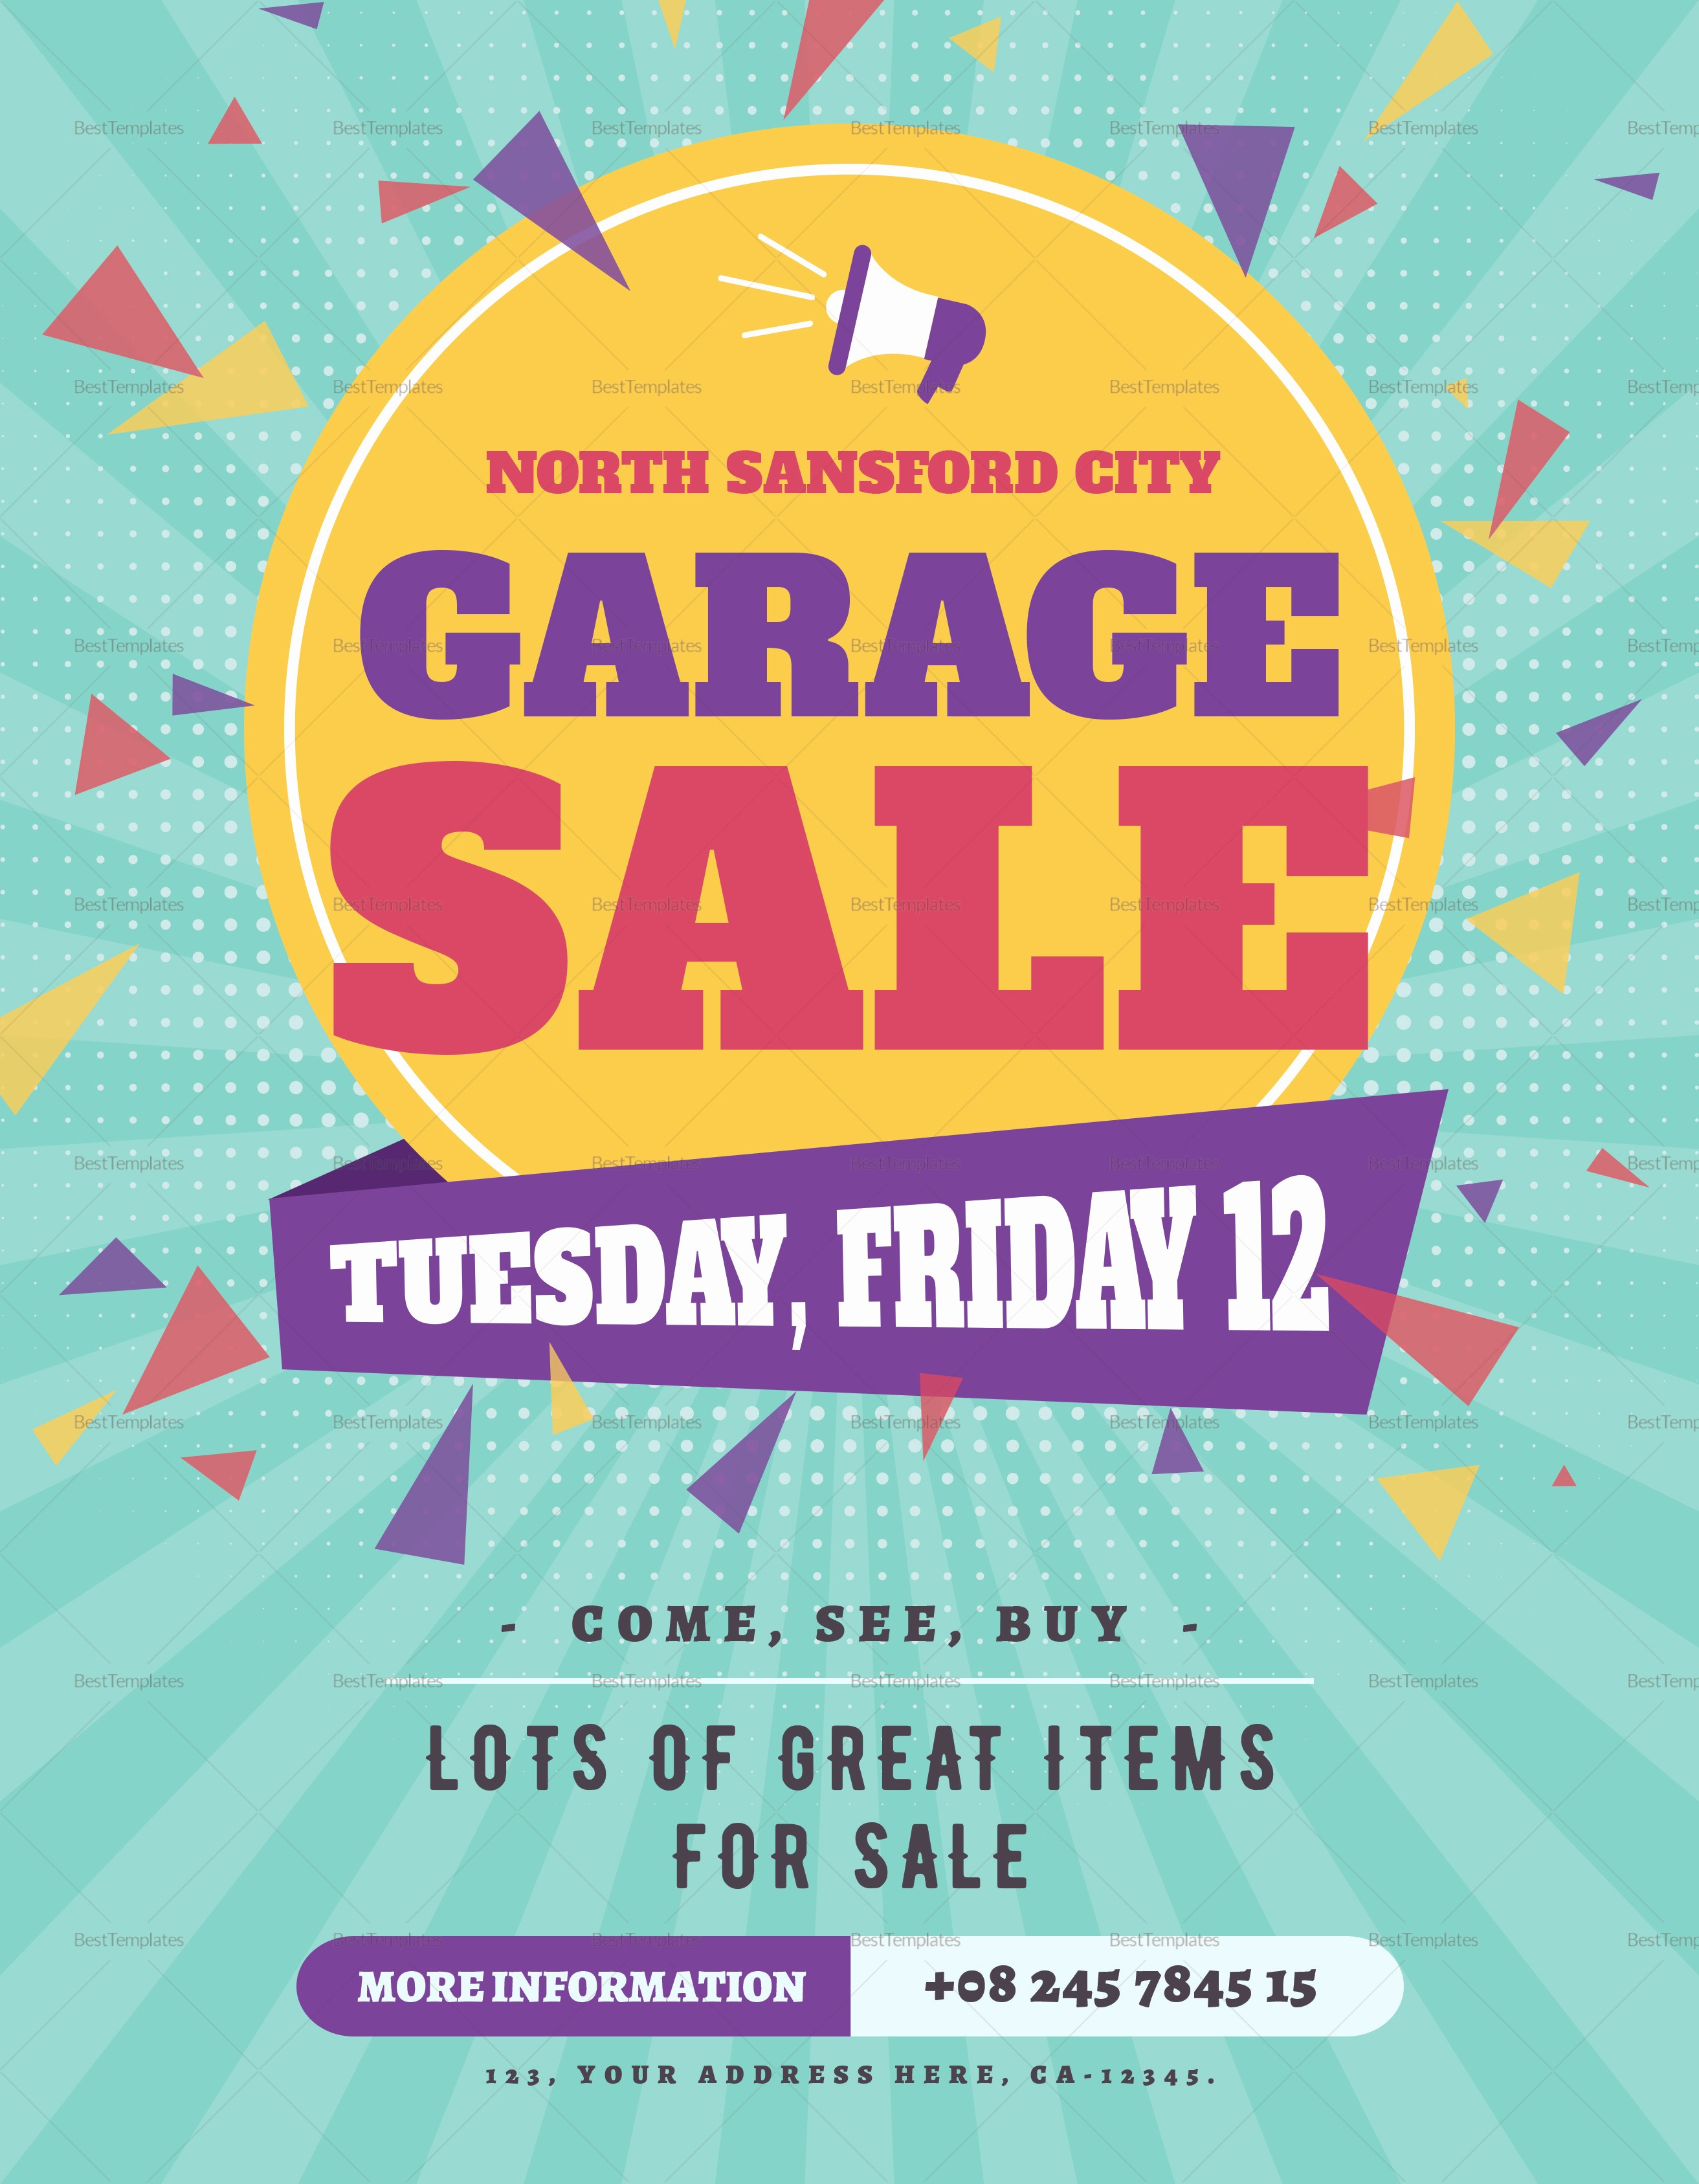 Free Printable Yard Sale Flyers Awesome Garage Sale Flyer Design Template In Psd Word